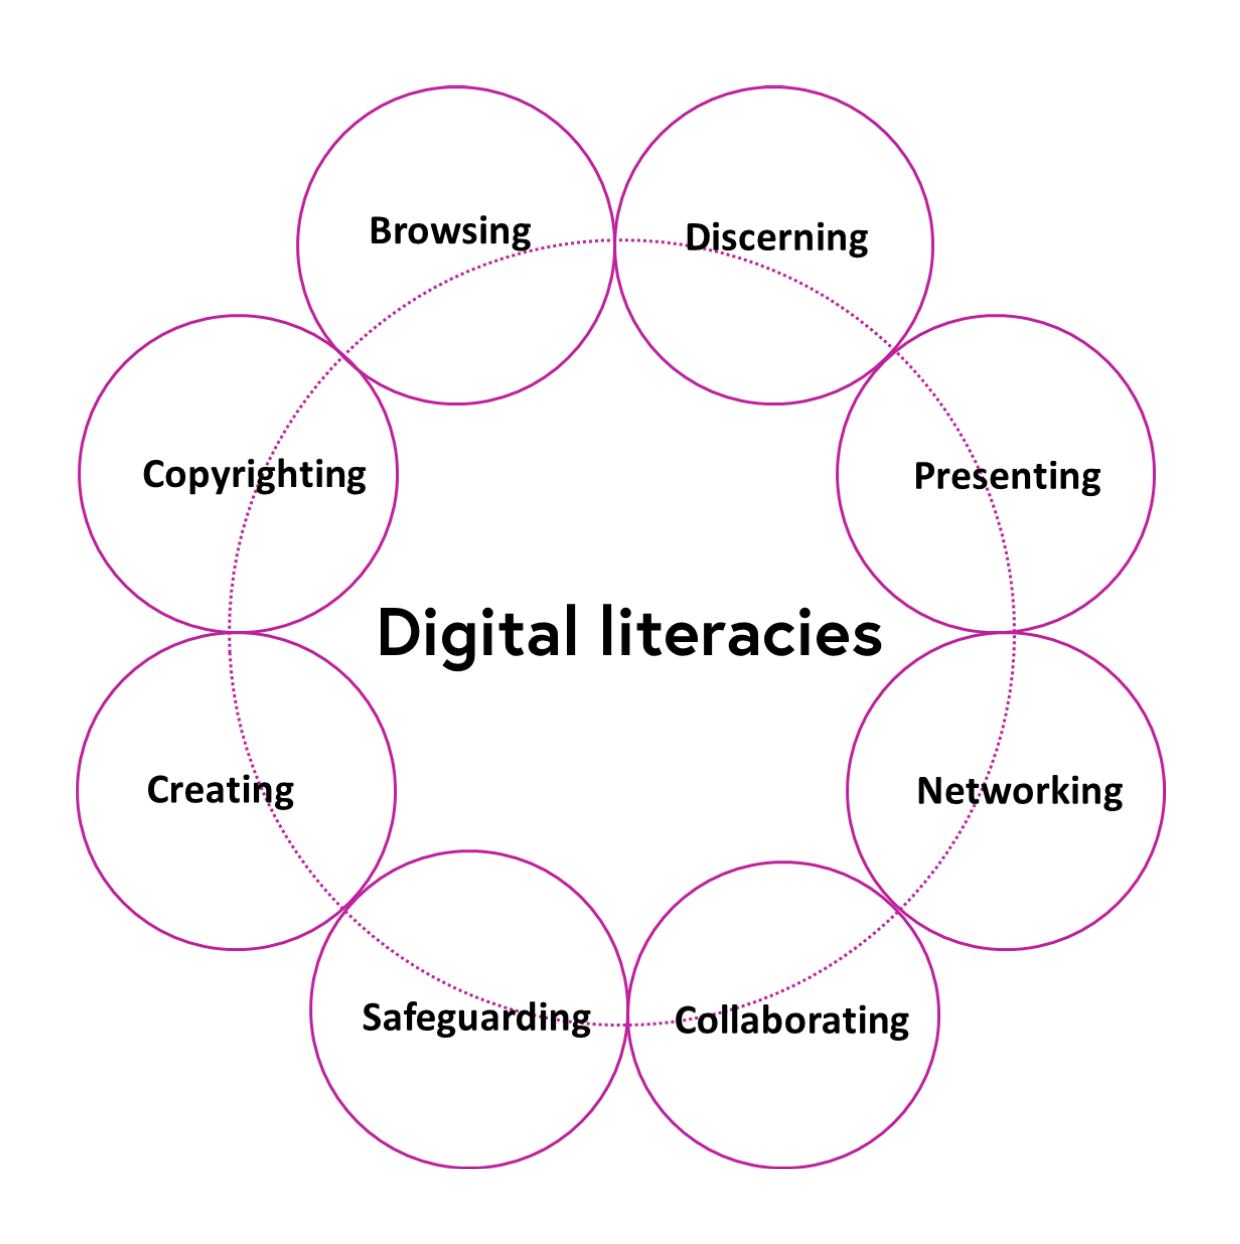 Digital literacies diagram